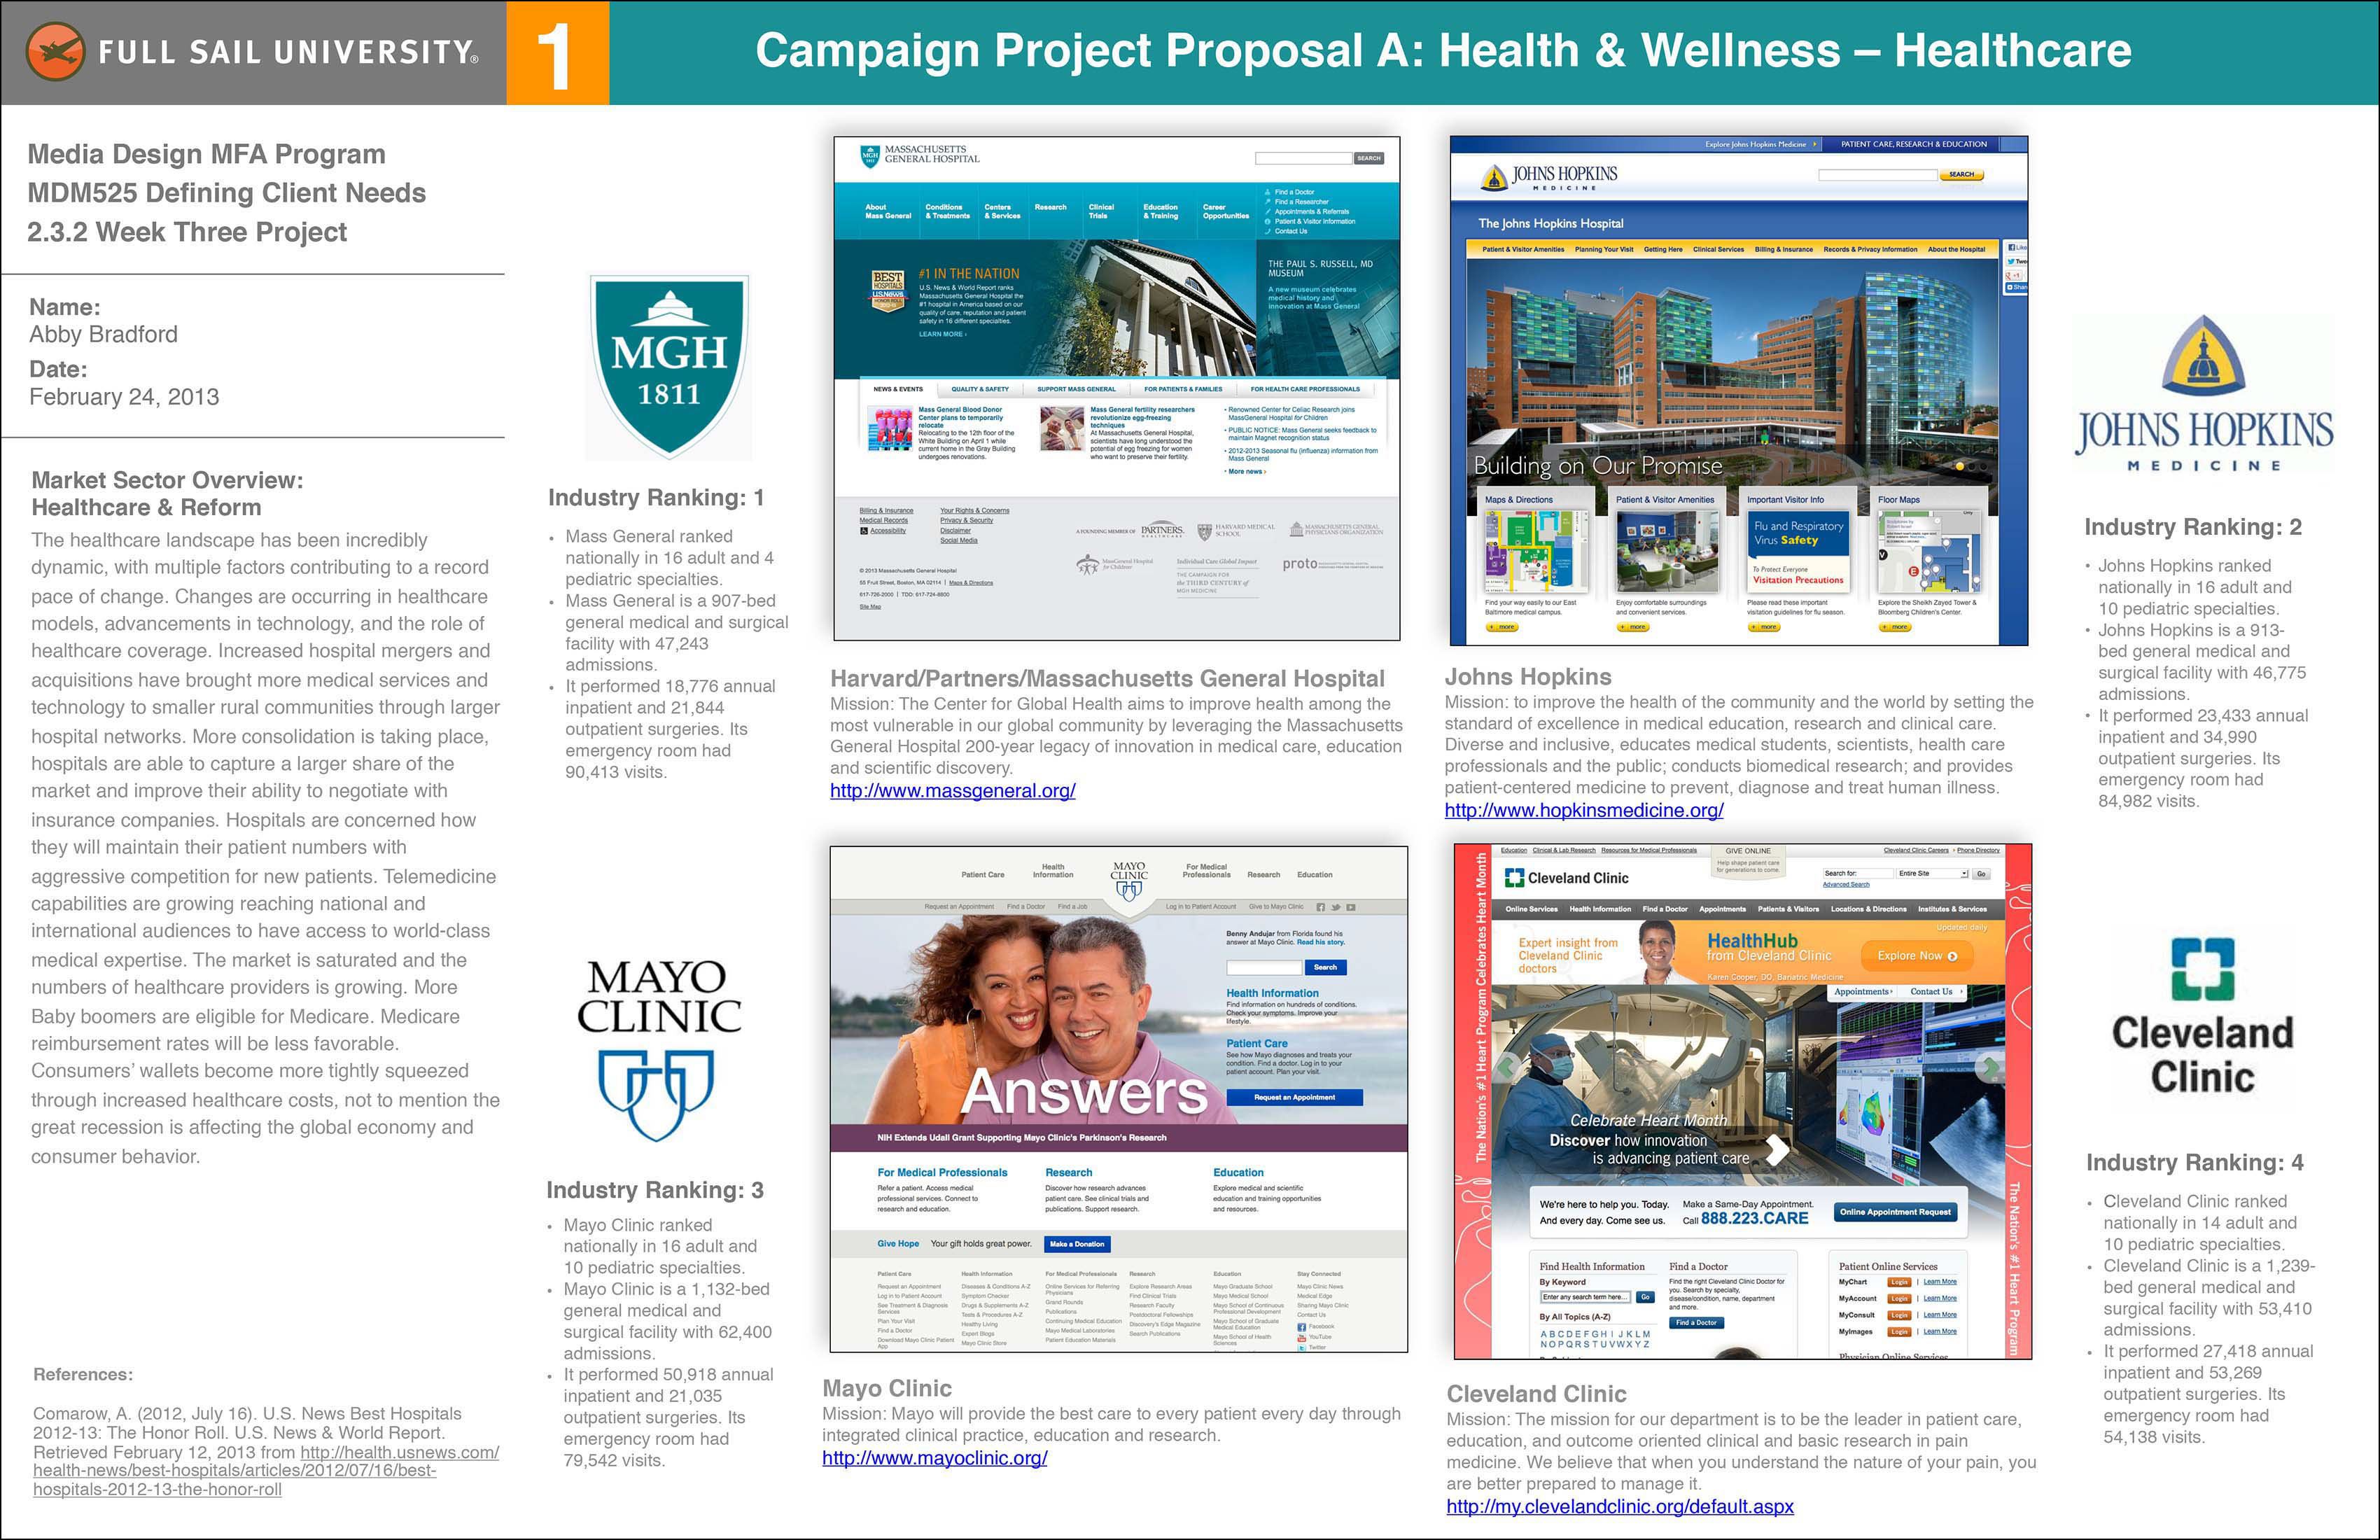 Abby Bradford - Mayo Clinic_Strategy-Campaign Project Proposal